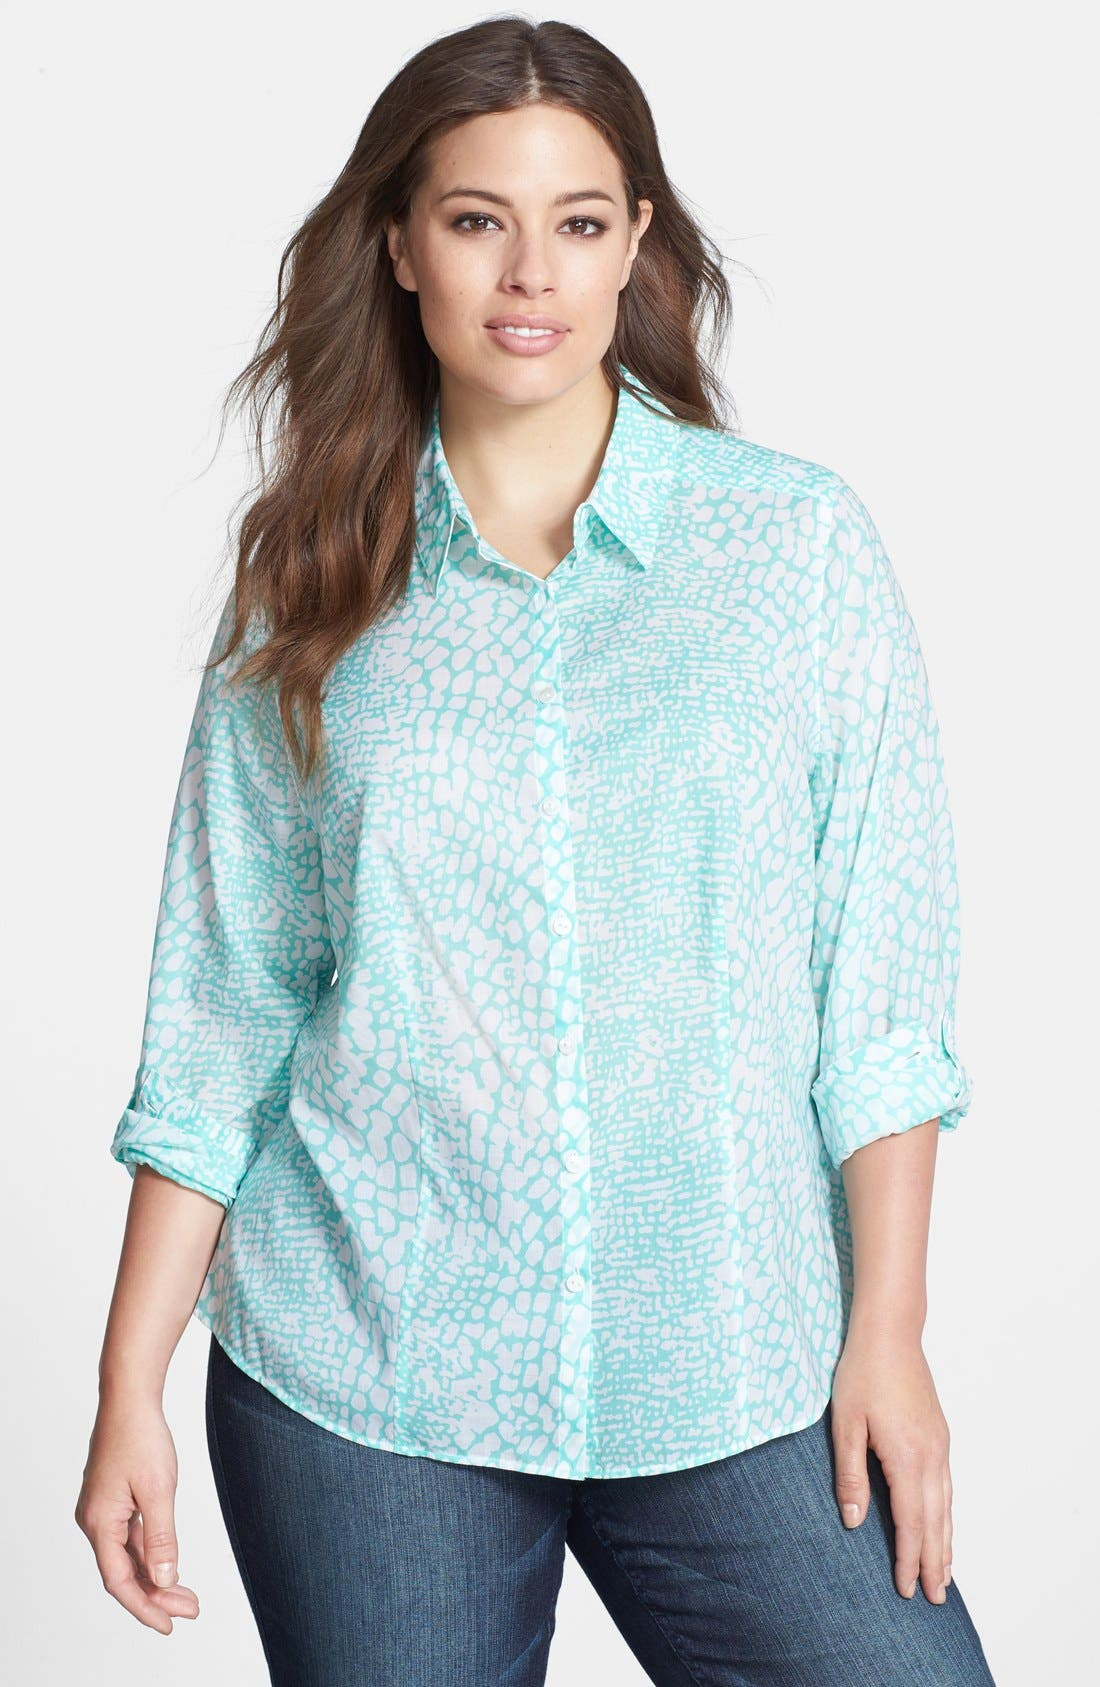 Alternate Image 1 Selected - Foxcroft Roll Sleeve Snakeskin Print Shaped Shirt (Plus Size)